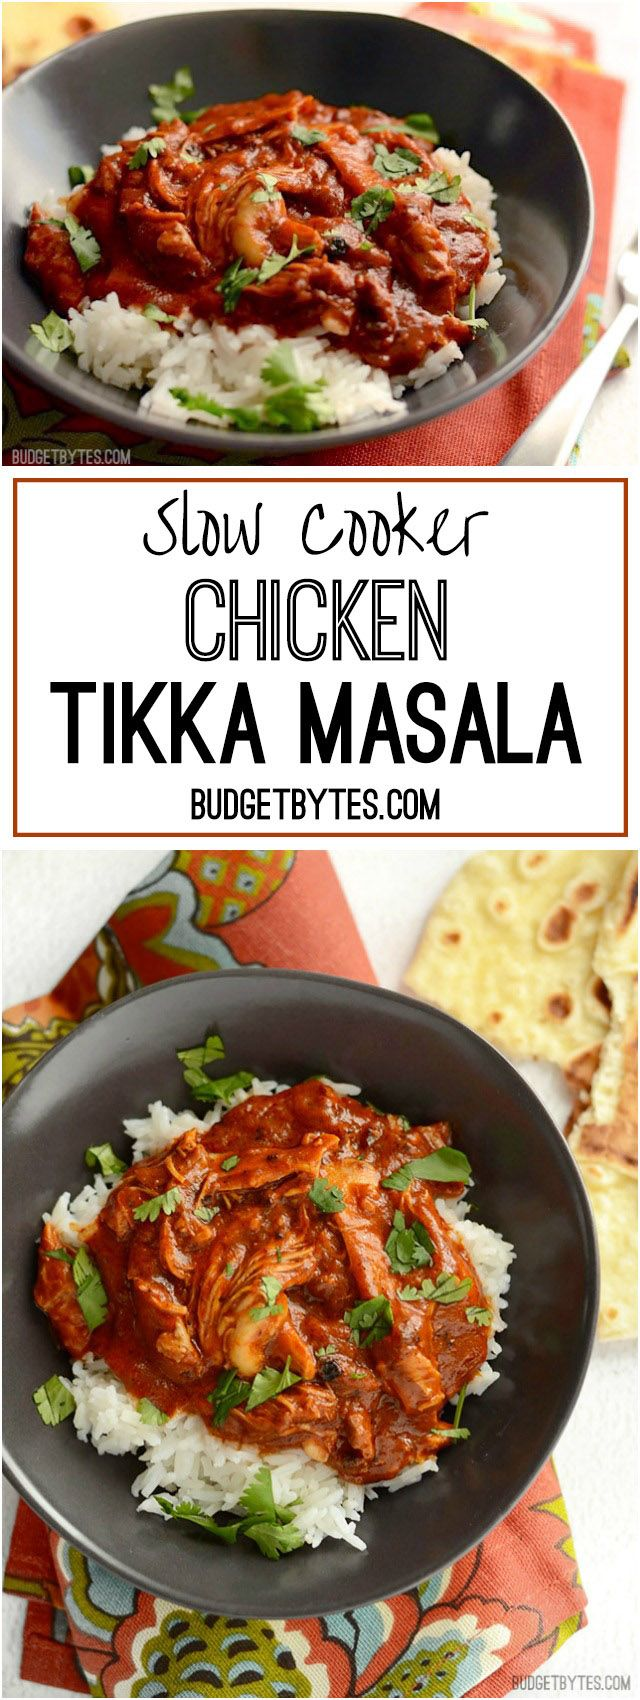 This Slow Cooker Chicken Tikka Masala boasts a rich and aromatic sauce and tender, juicy chicken. Set it and forget it until your house smells amazing! - BudgetBytes.com